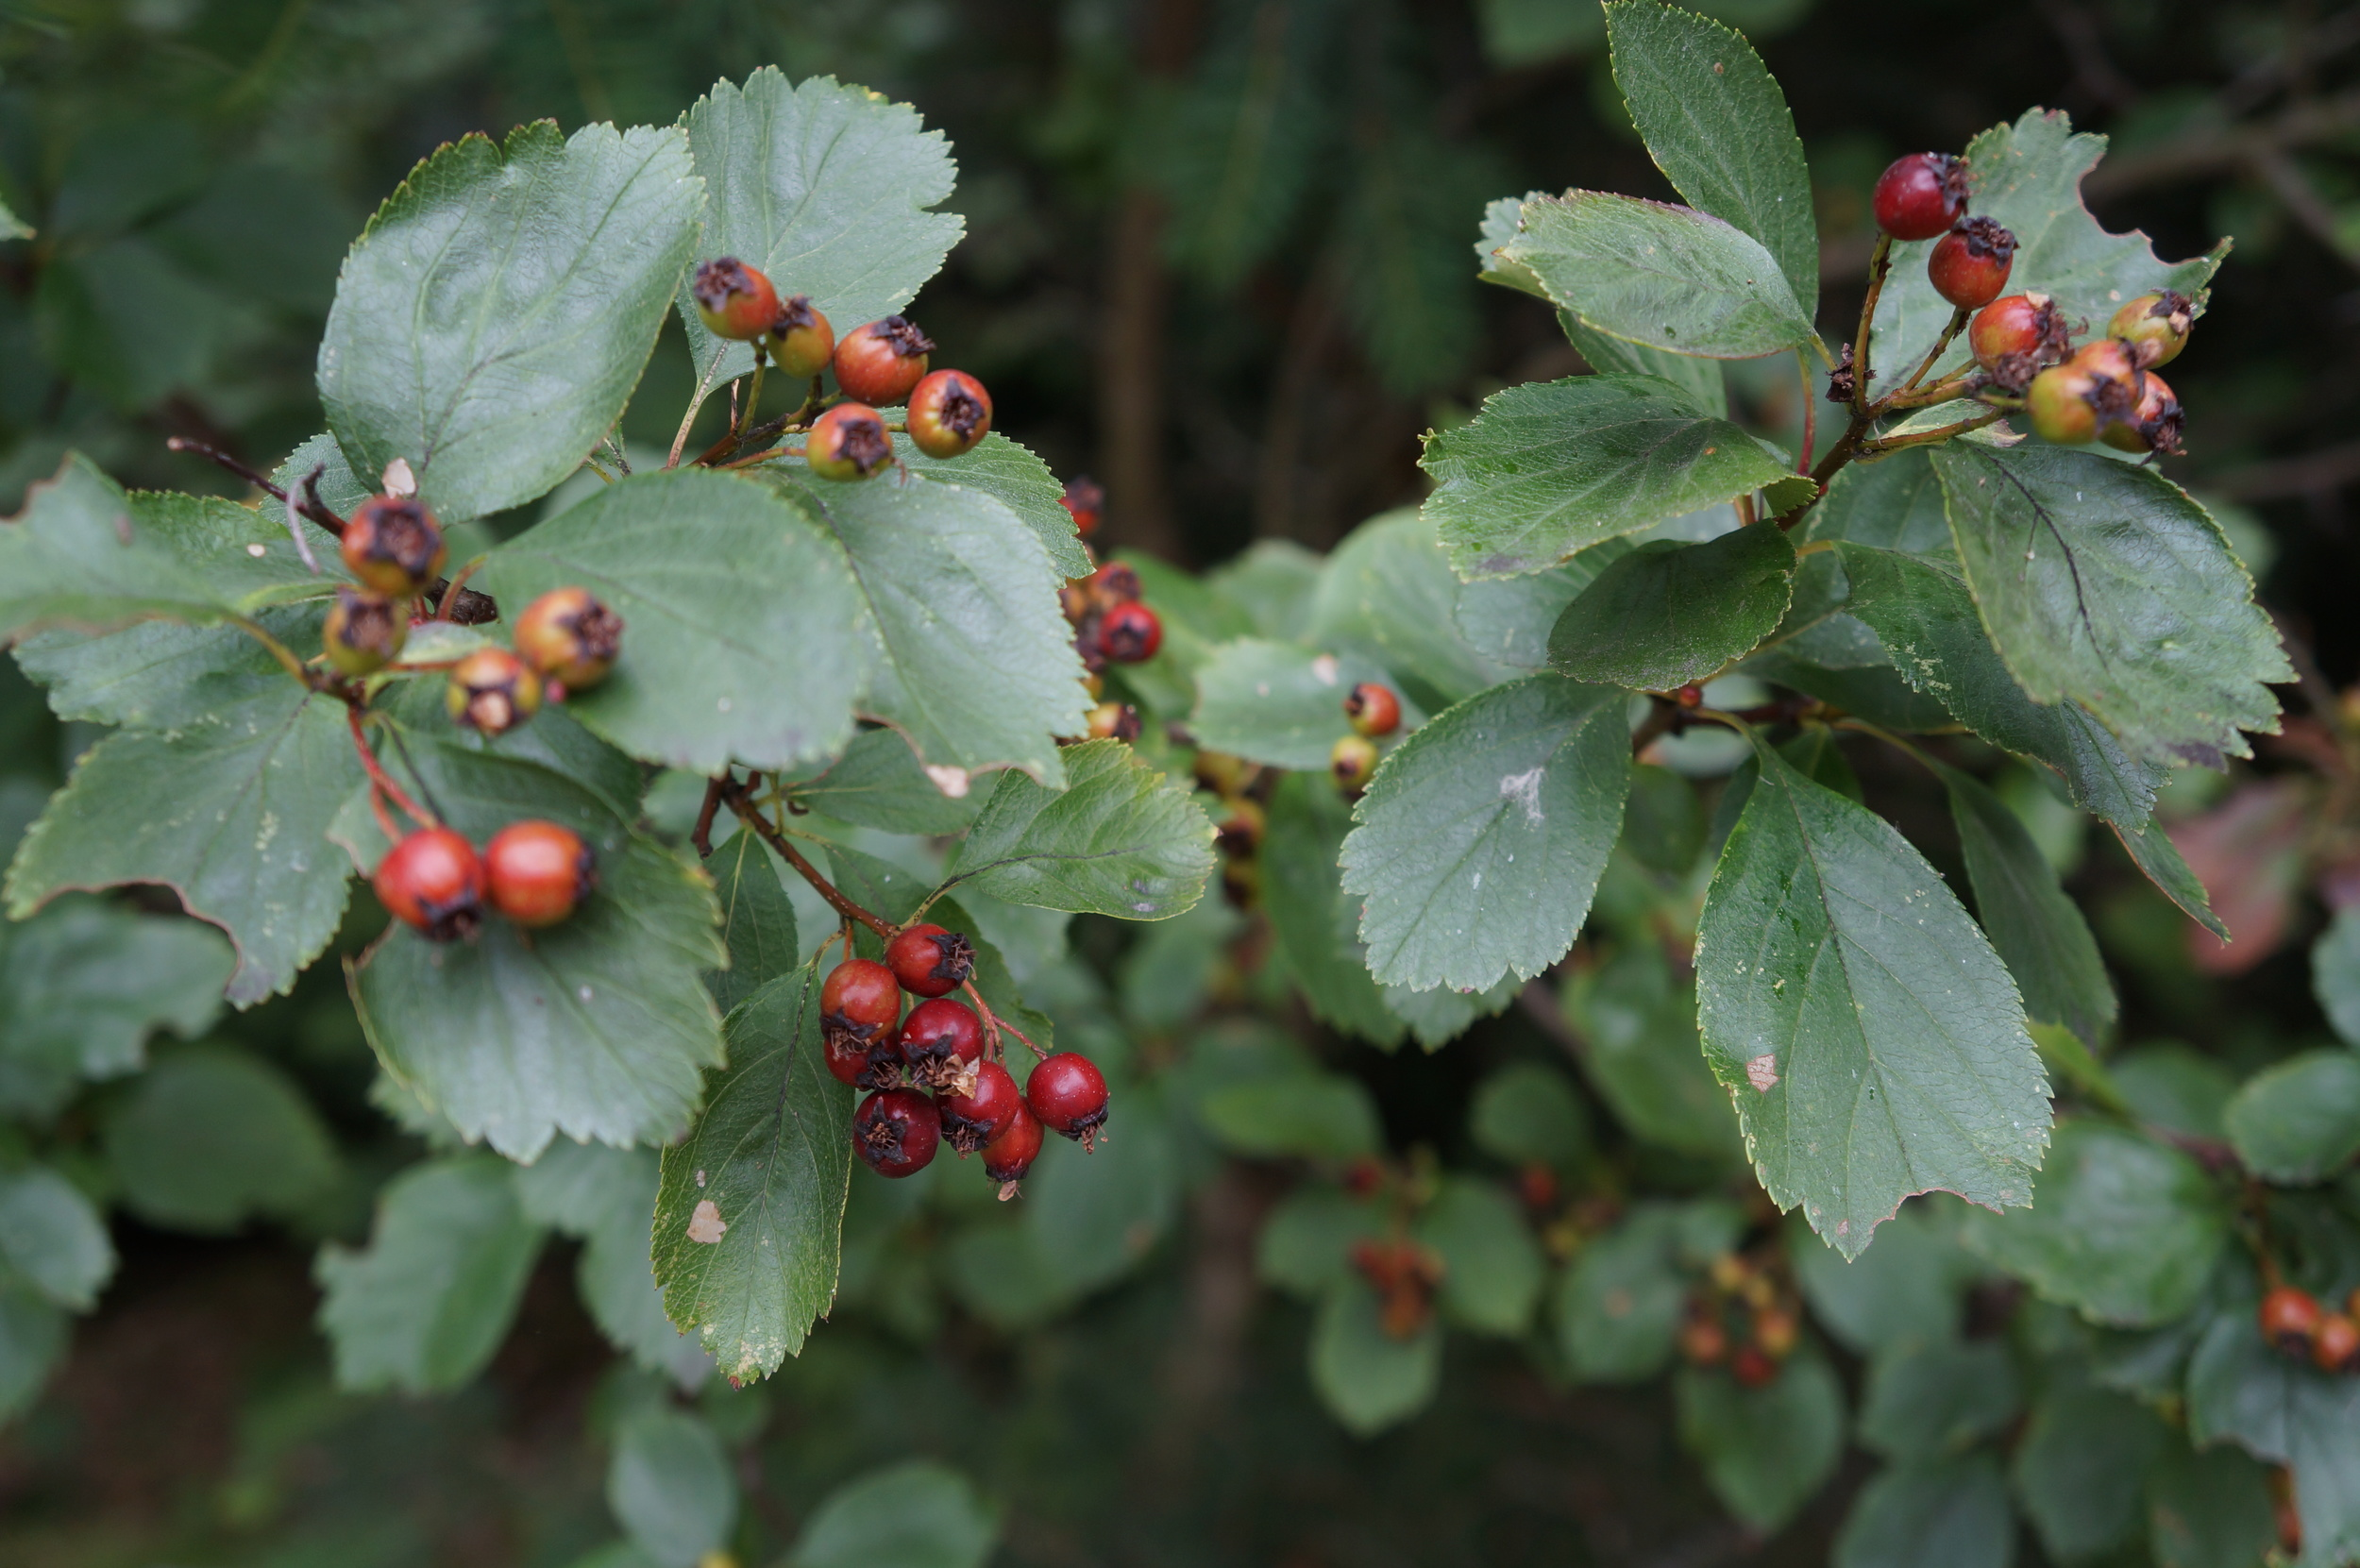 Native   Crataegus Douglasii  / Douglas' hawthorn , not to be confused with the noxious  common hawthorn /  Crataegus monogyna .  They have much different leaves (see below) and unfortunately you almost always encounter the weedy one.